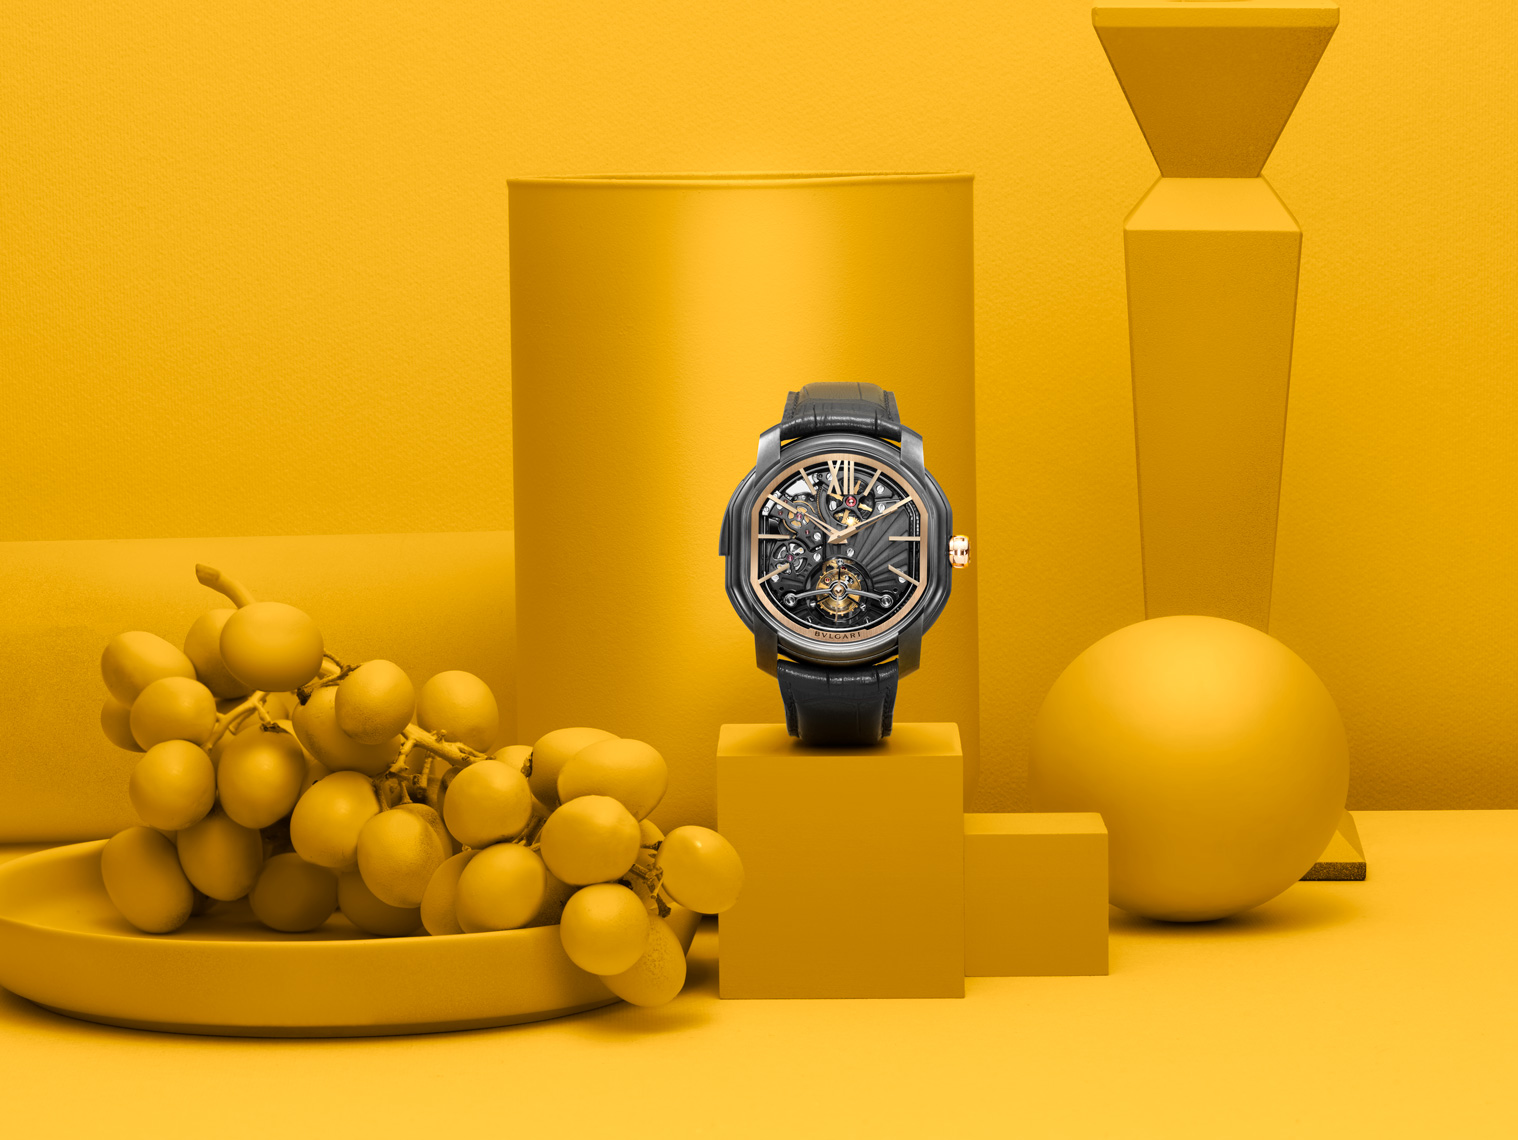 BULGARI_MONOCHROME_YELLOW_B